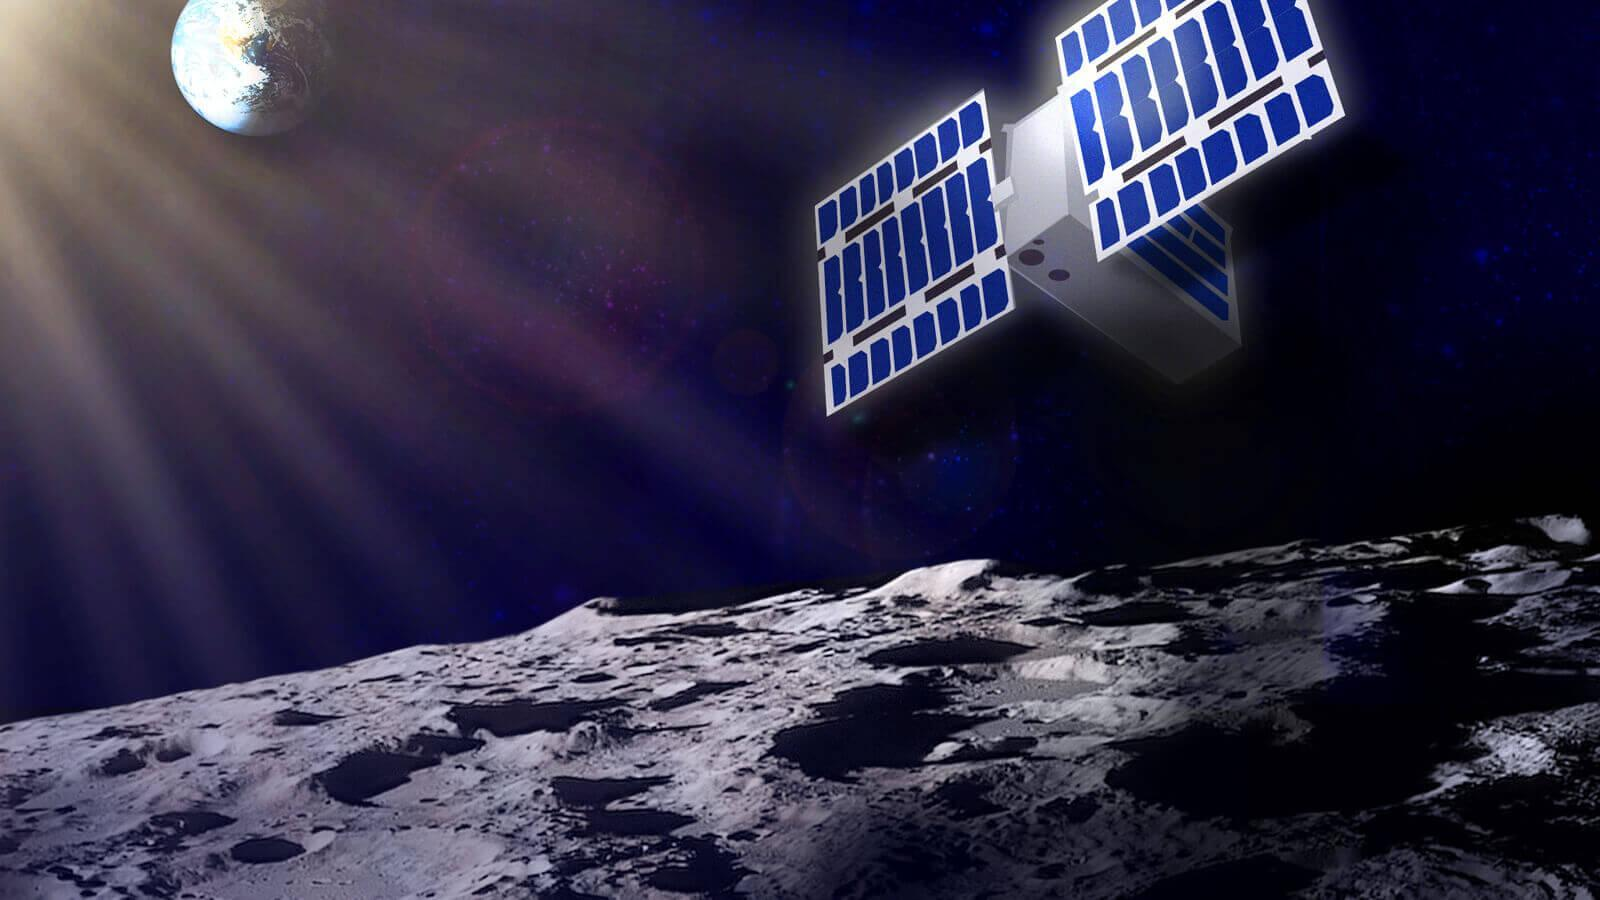 NASA mission exploring the presence of hydrogen on the southern hemisphere of the moon with CubeSats